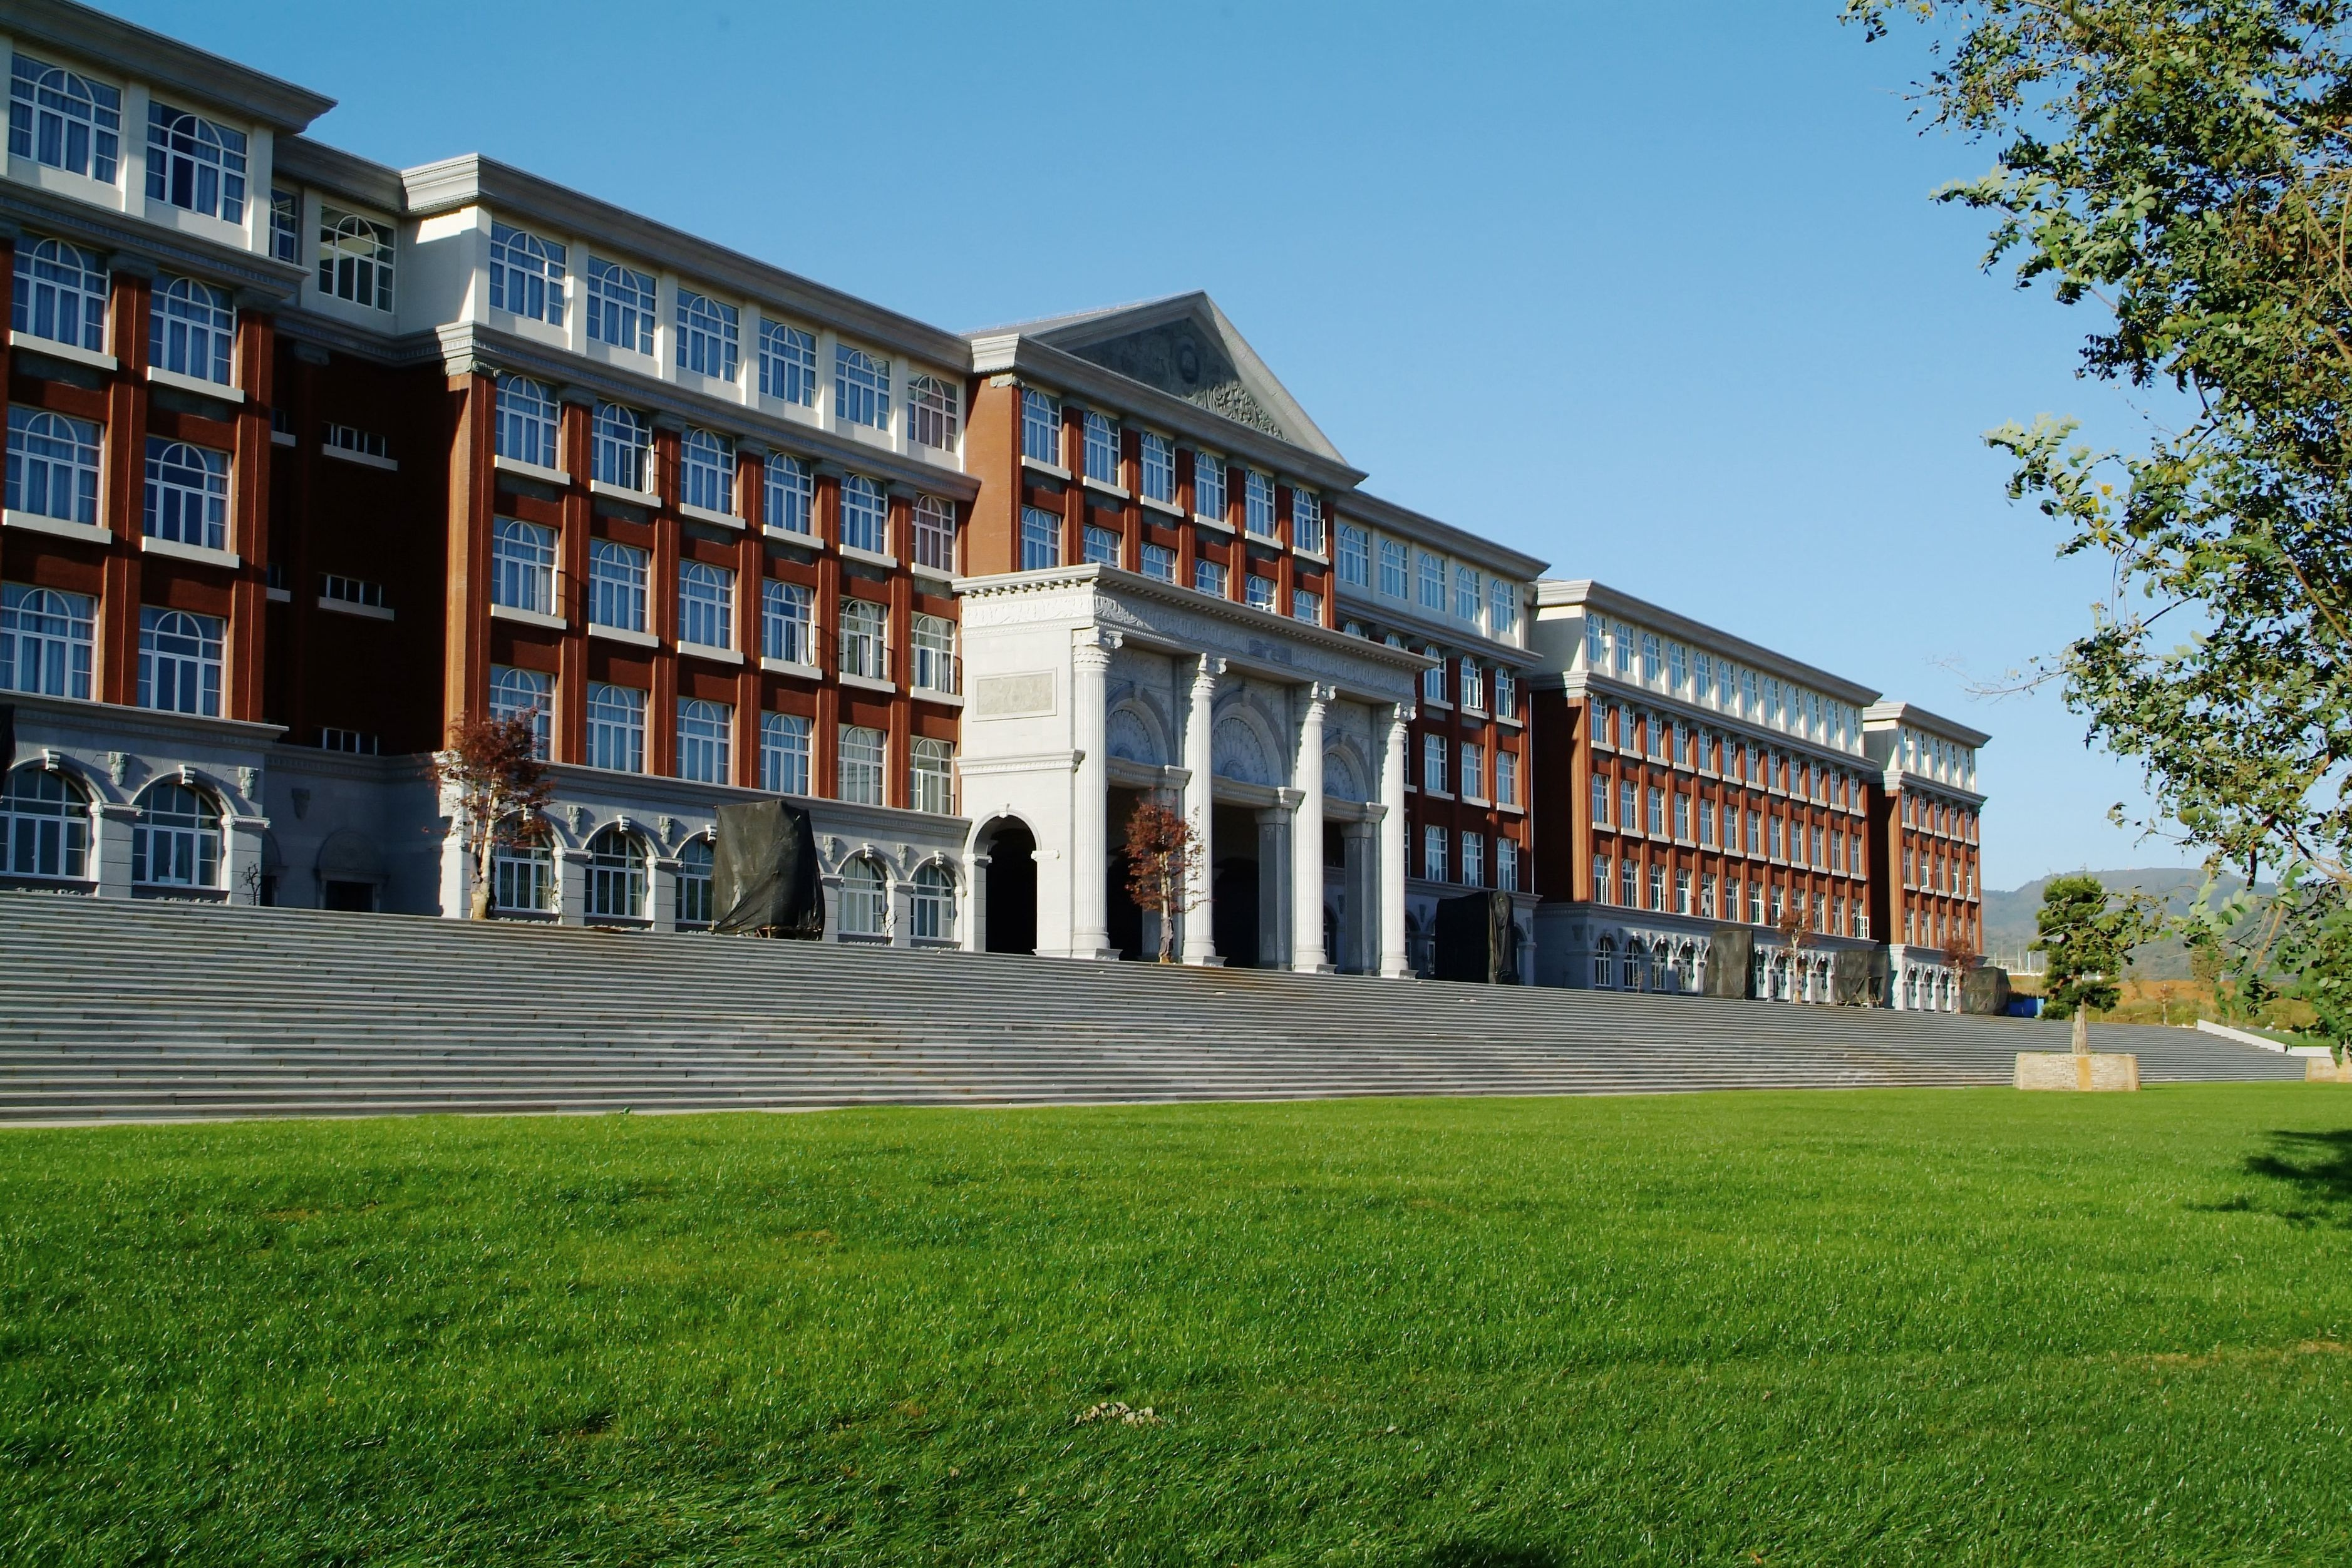 University building with a green lawn